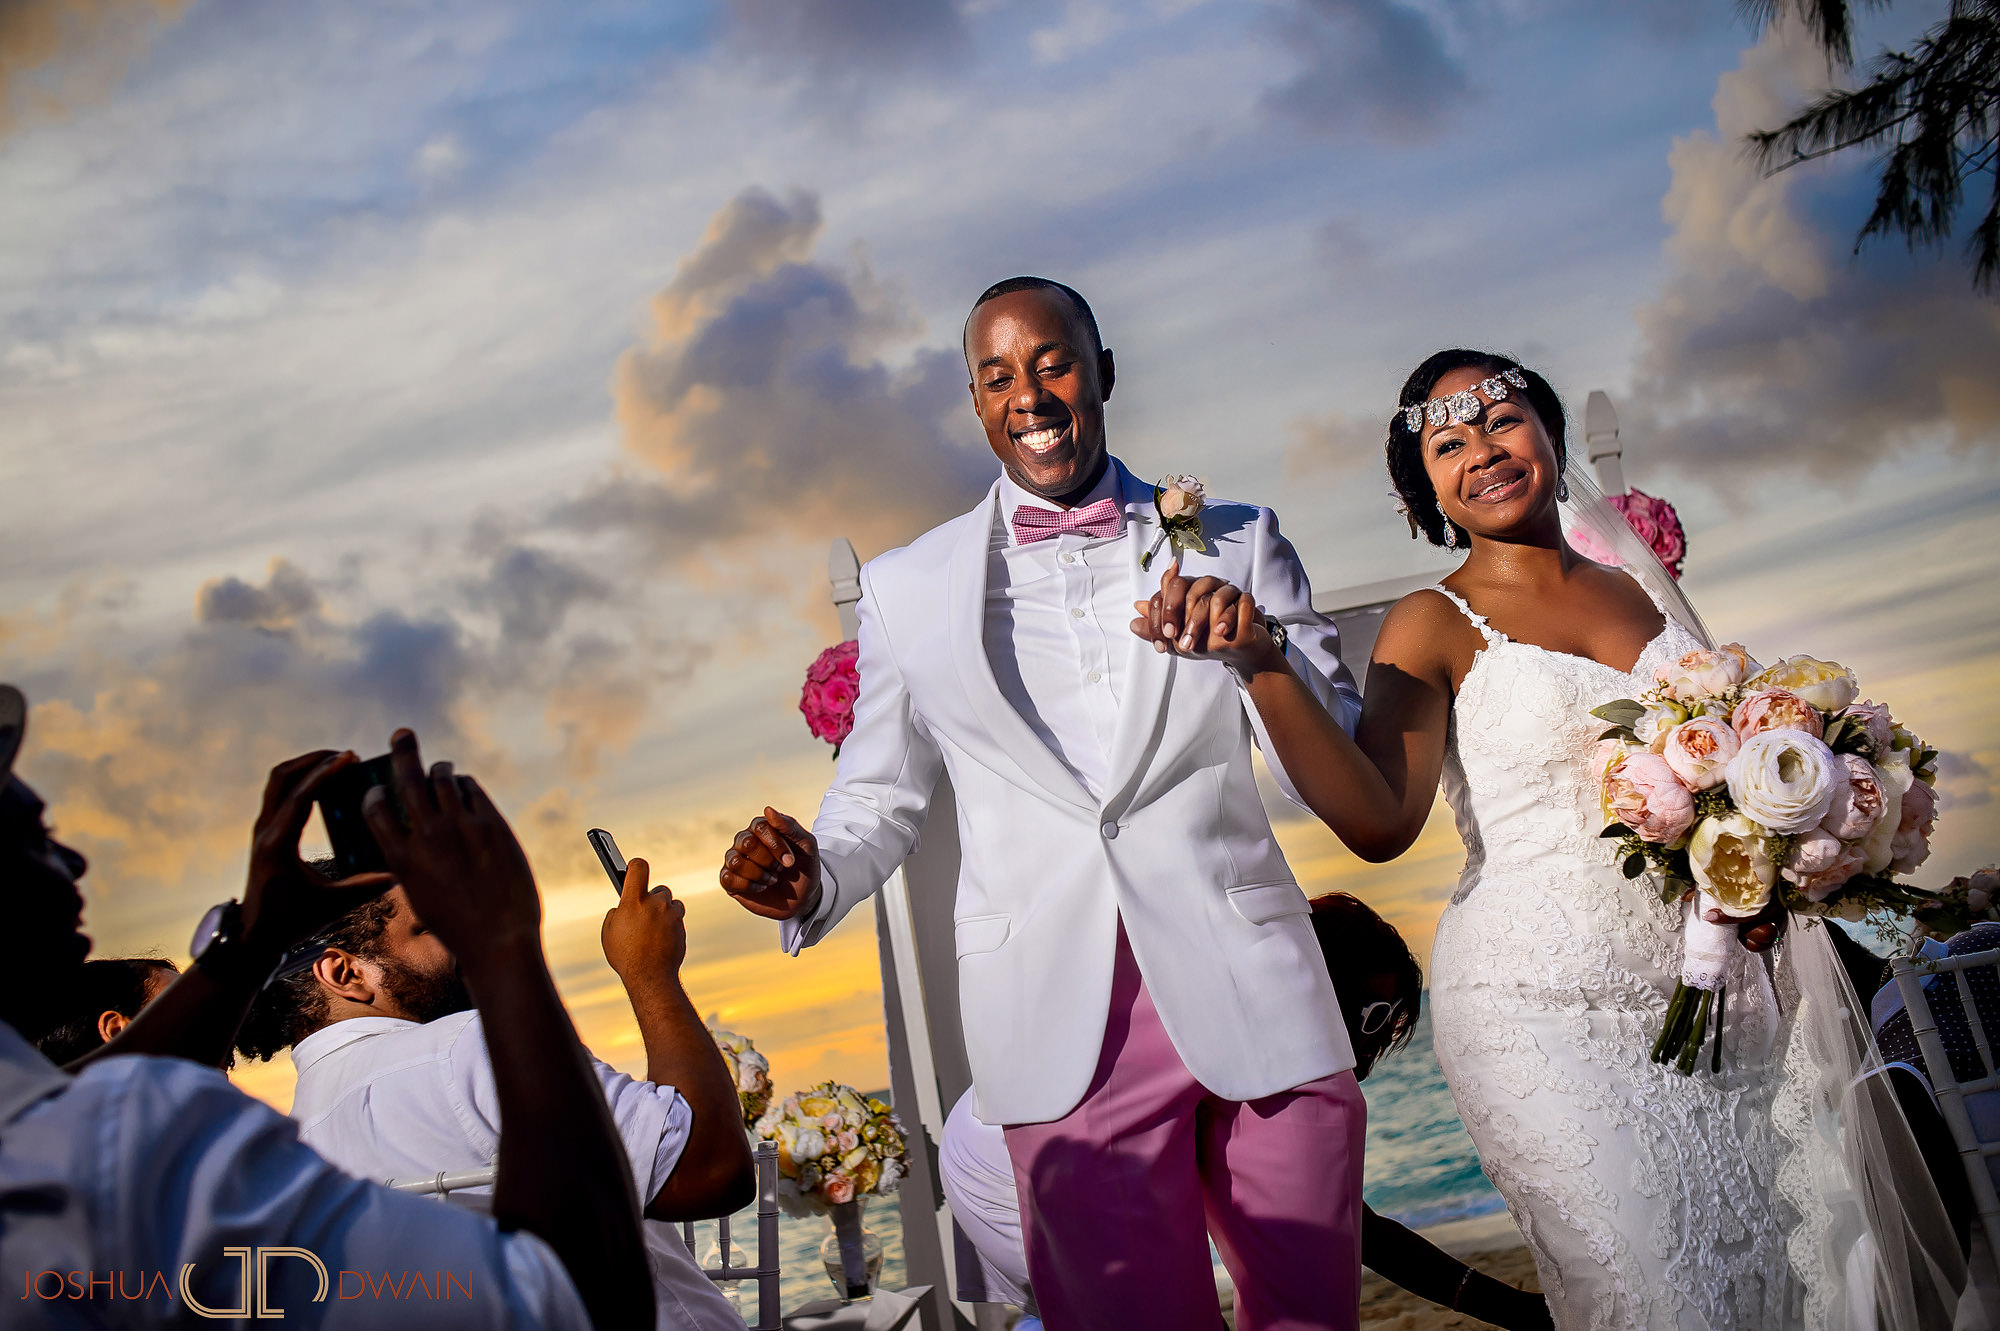 penelope-joseph-031-beaches-resort-turks-and-caicos-providenciales-wedding-photographer-joshua-dwain